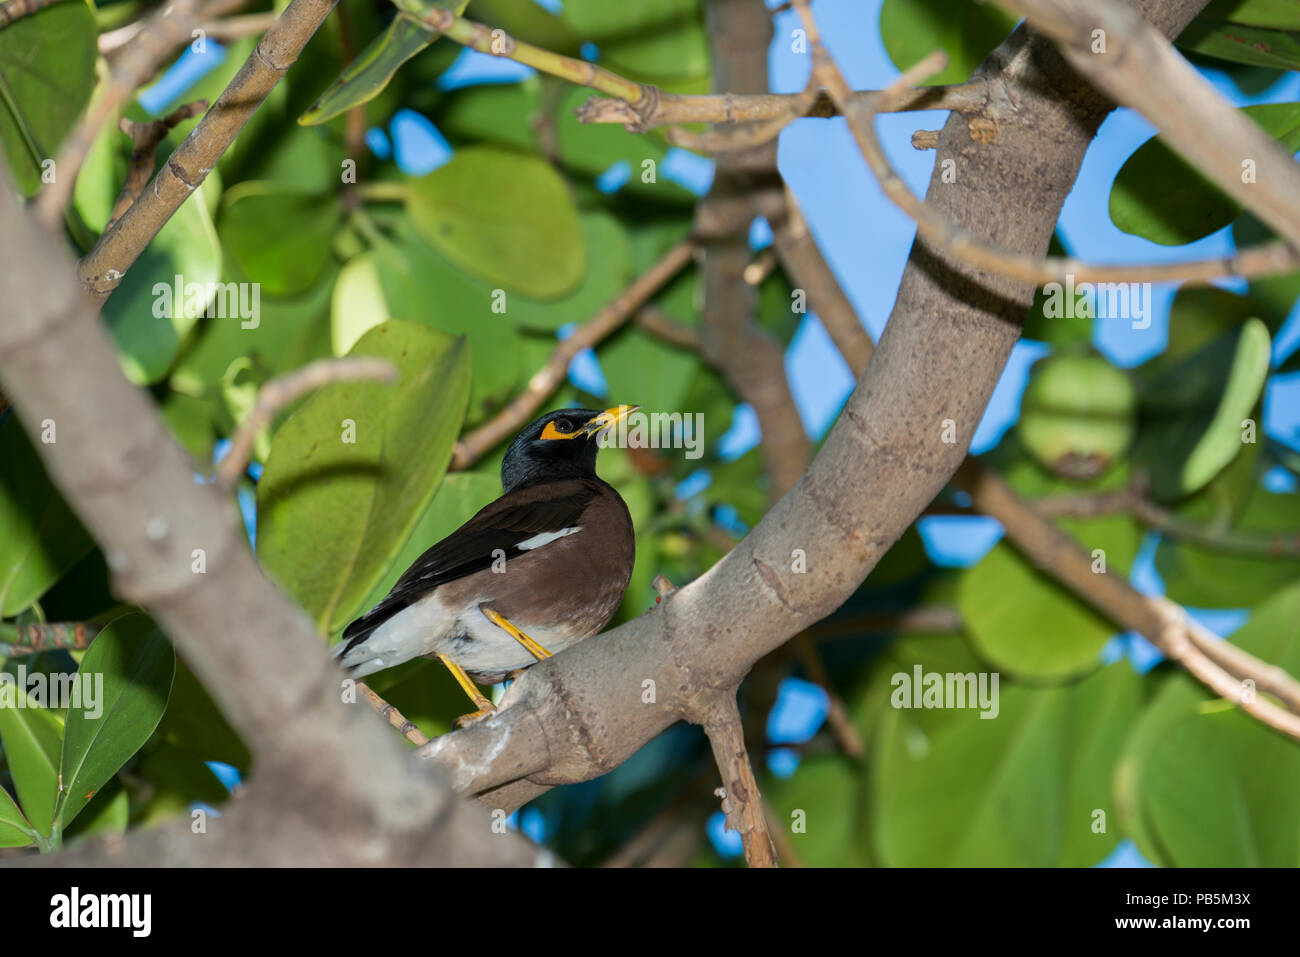 Maui, Hawaii.  Common myna,  Acridotheres tristis perched in a tree. - Stock Image